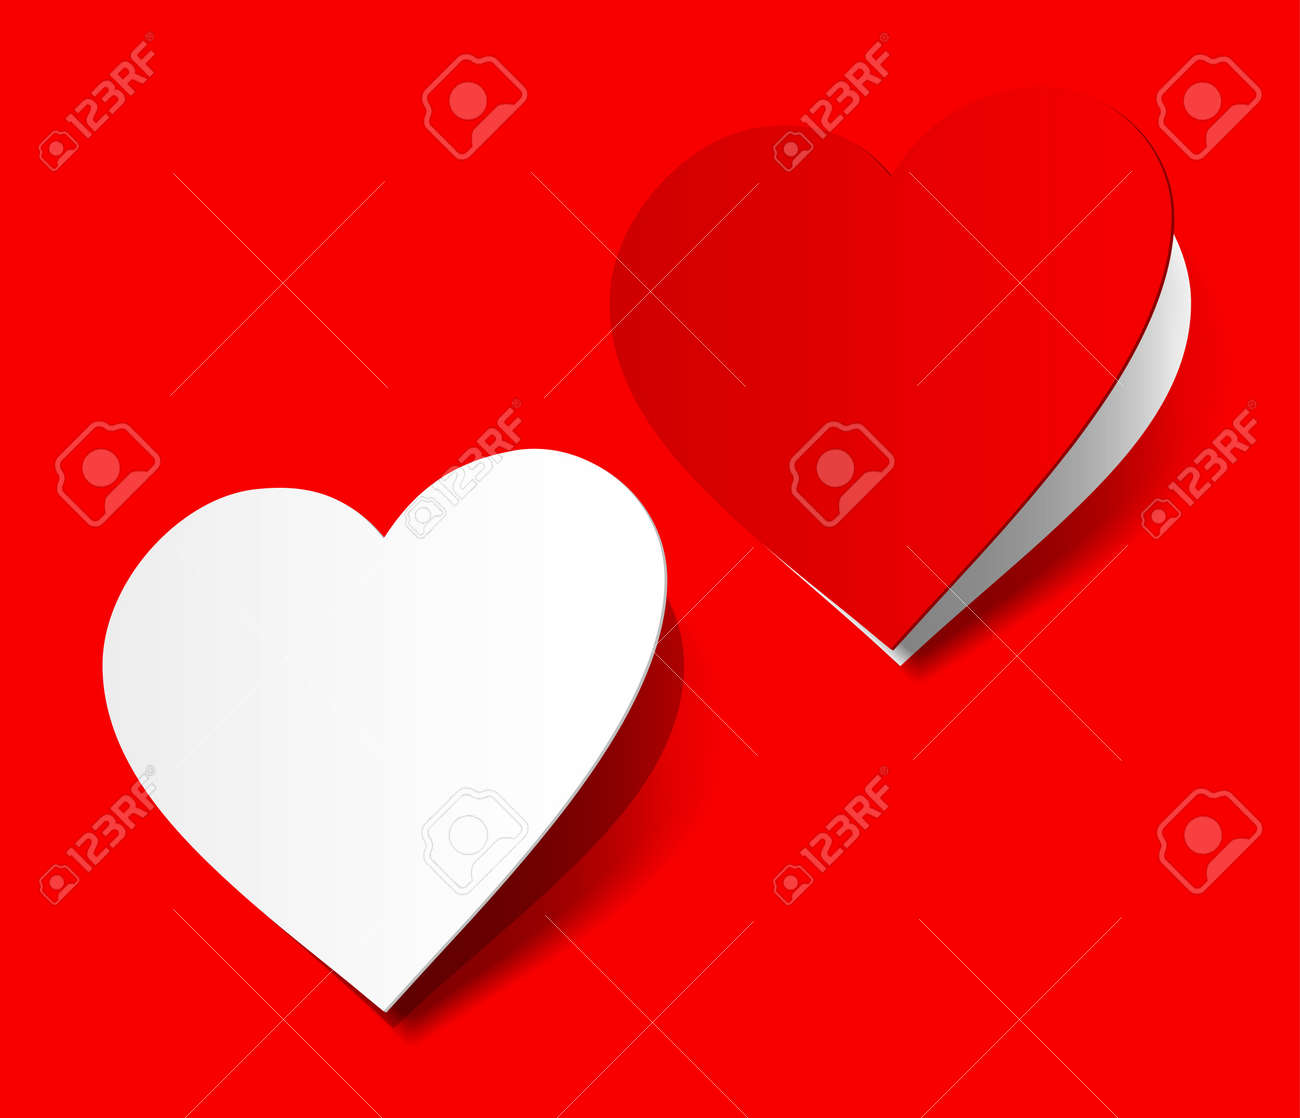 I love you heart sticker red scarlet realistic shadow symbol sign object paper emotion Stock Vector - 11175095